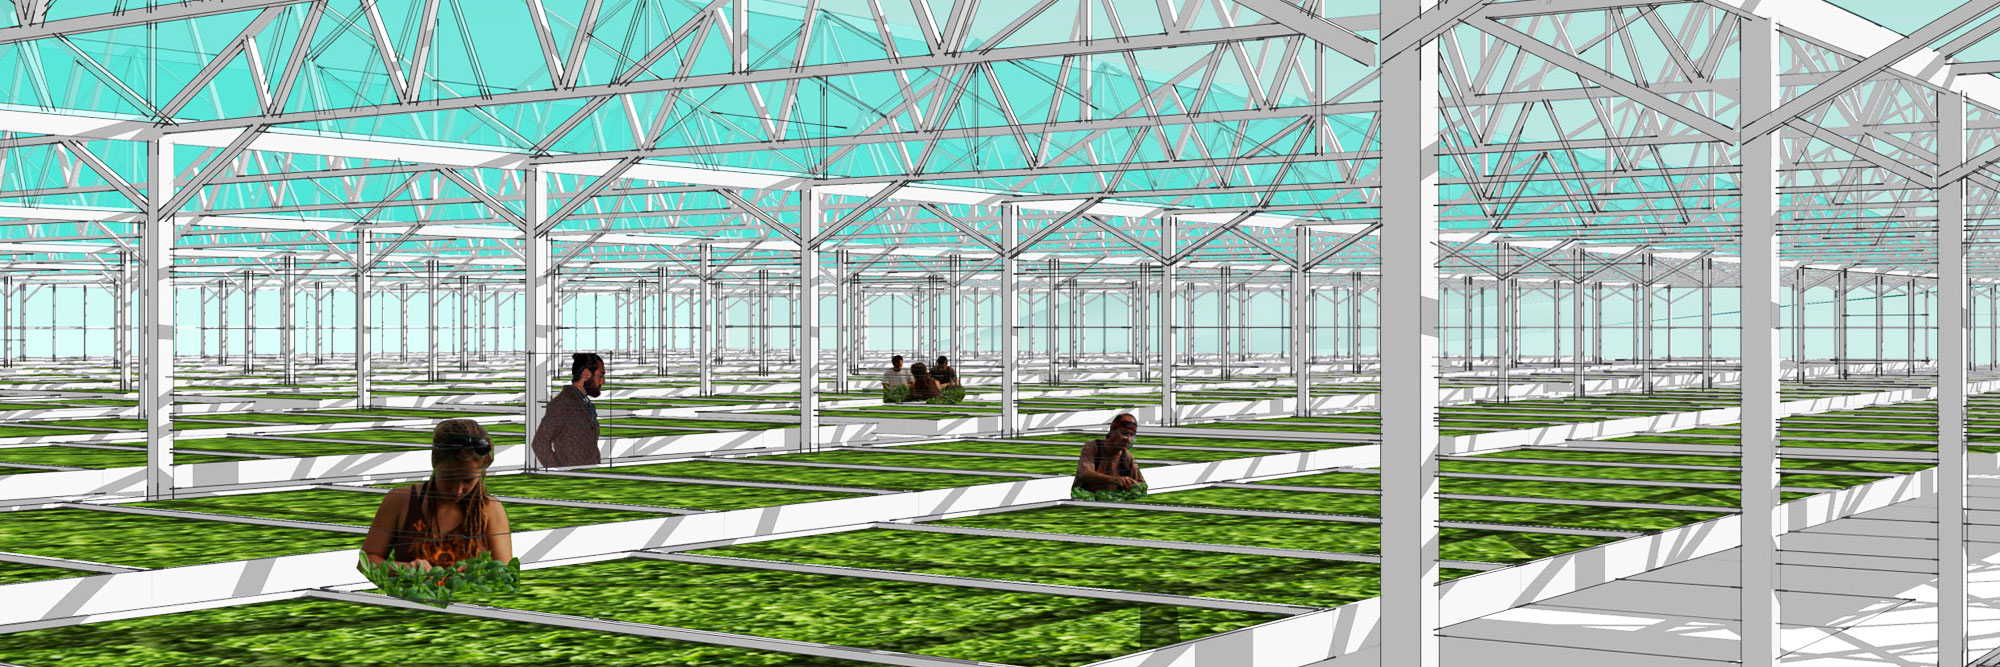 ARE×A's KEAP (Keene Energy & Agriculture Project) Proposal Wins